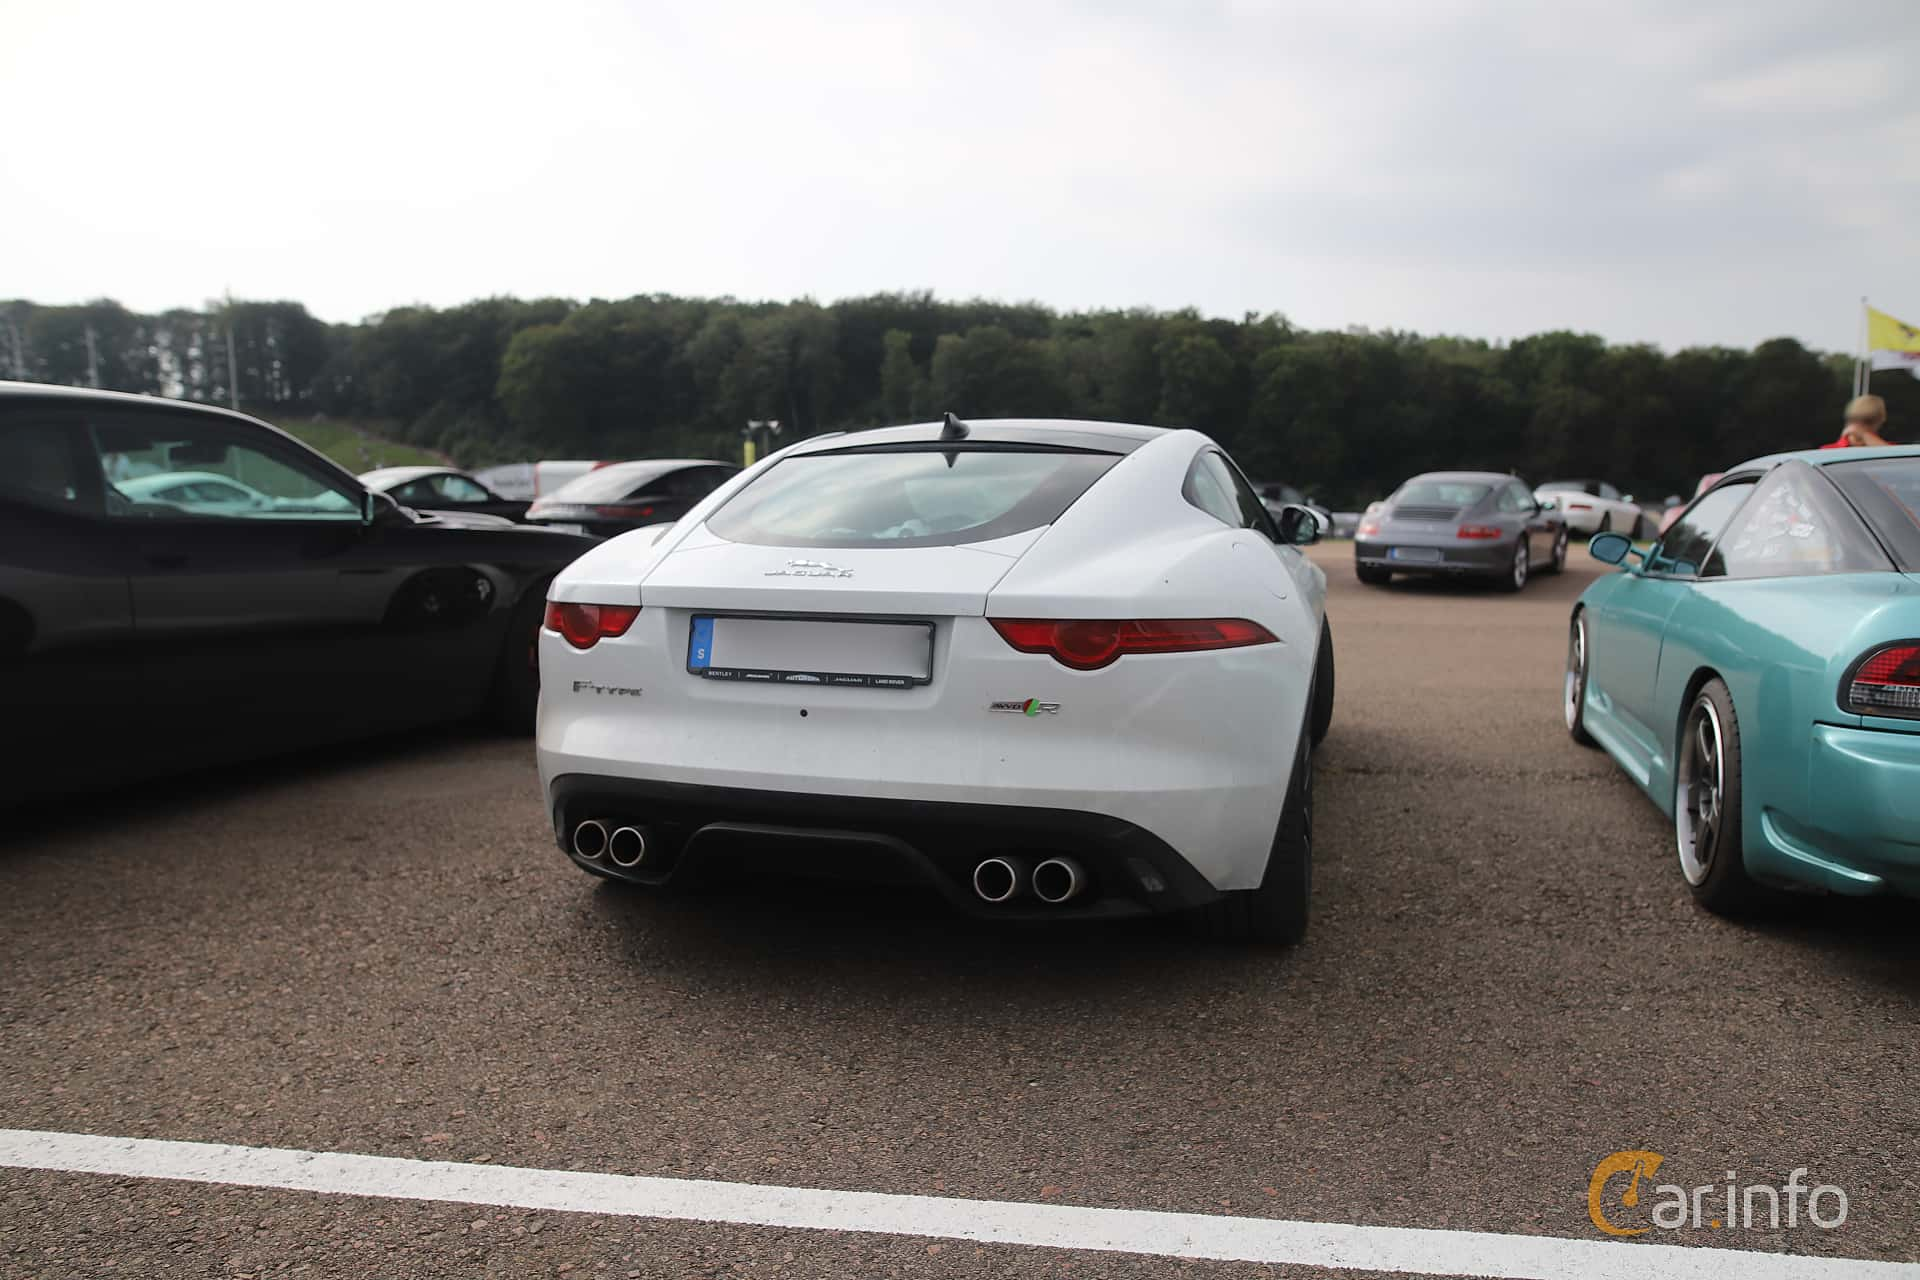 Jaguar F-Type R AWD  Automatic, 550hp, 2016 at Autoropa Racing day Knutstorp 2019